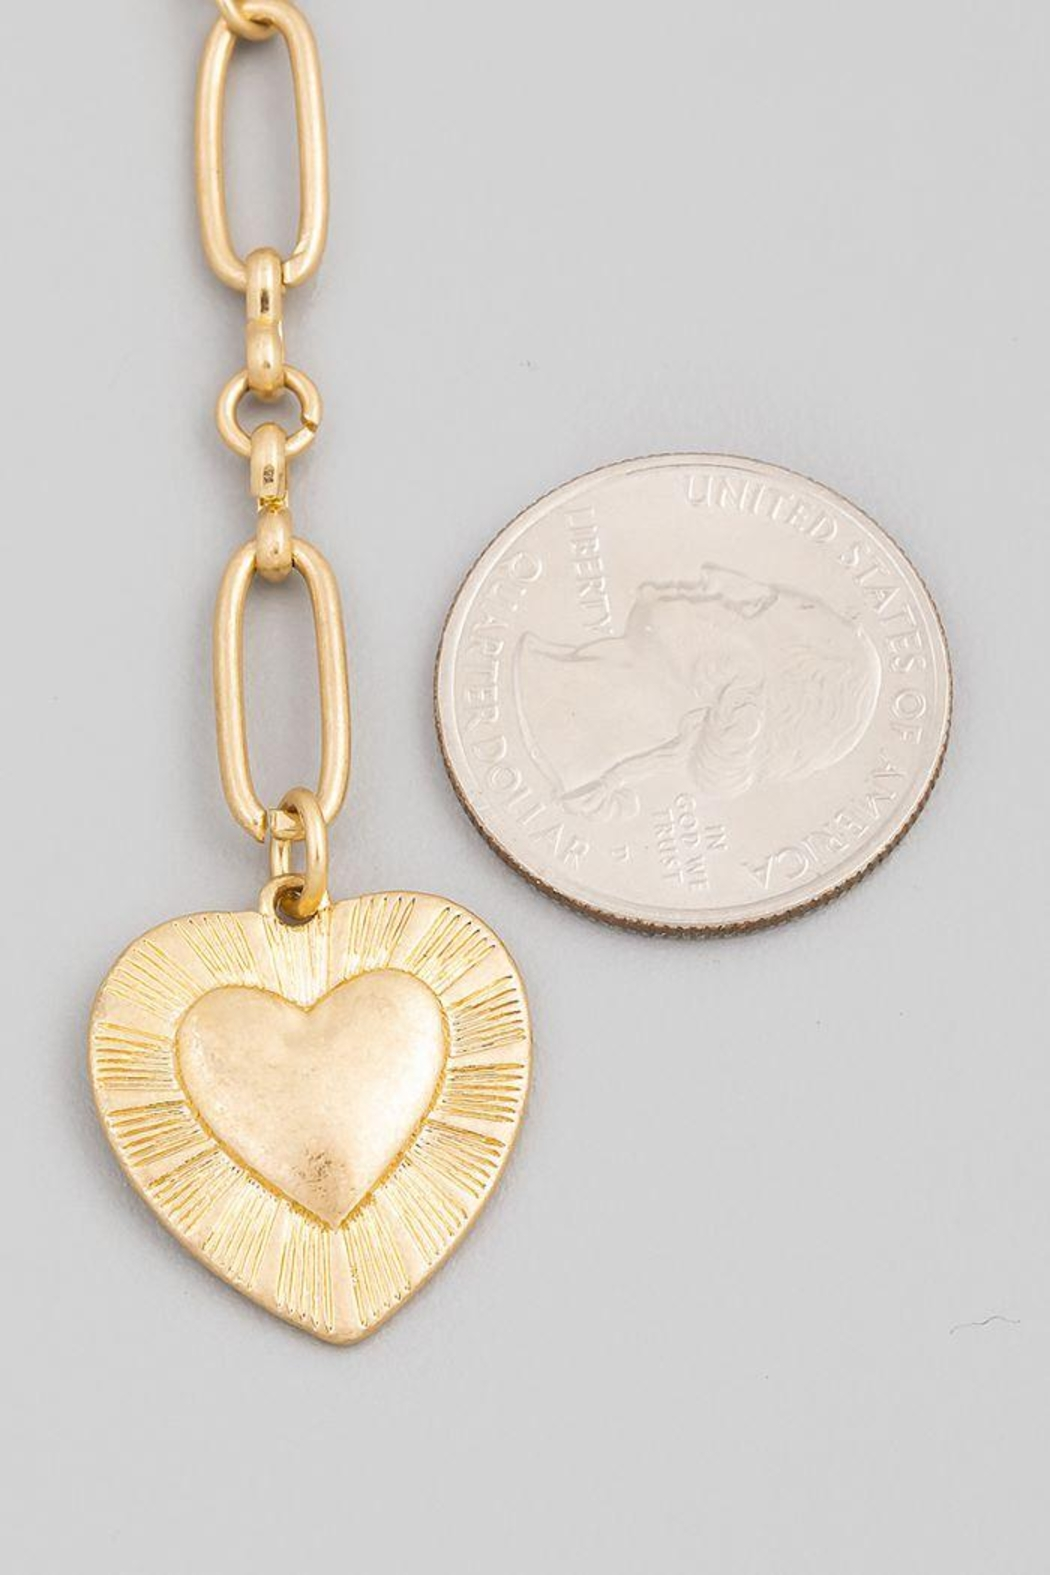 Fame Accessories Chain Link Heart Pendant Necklace - Front Full Image